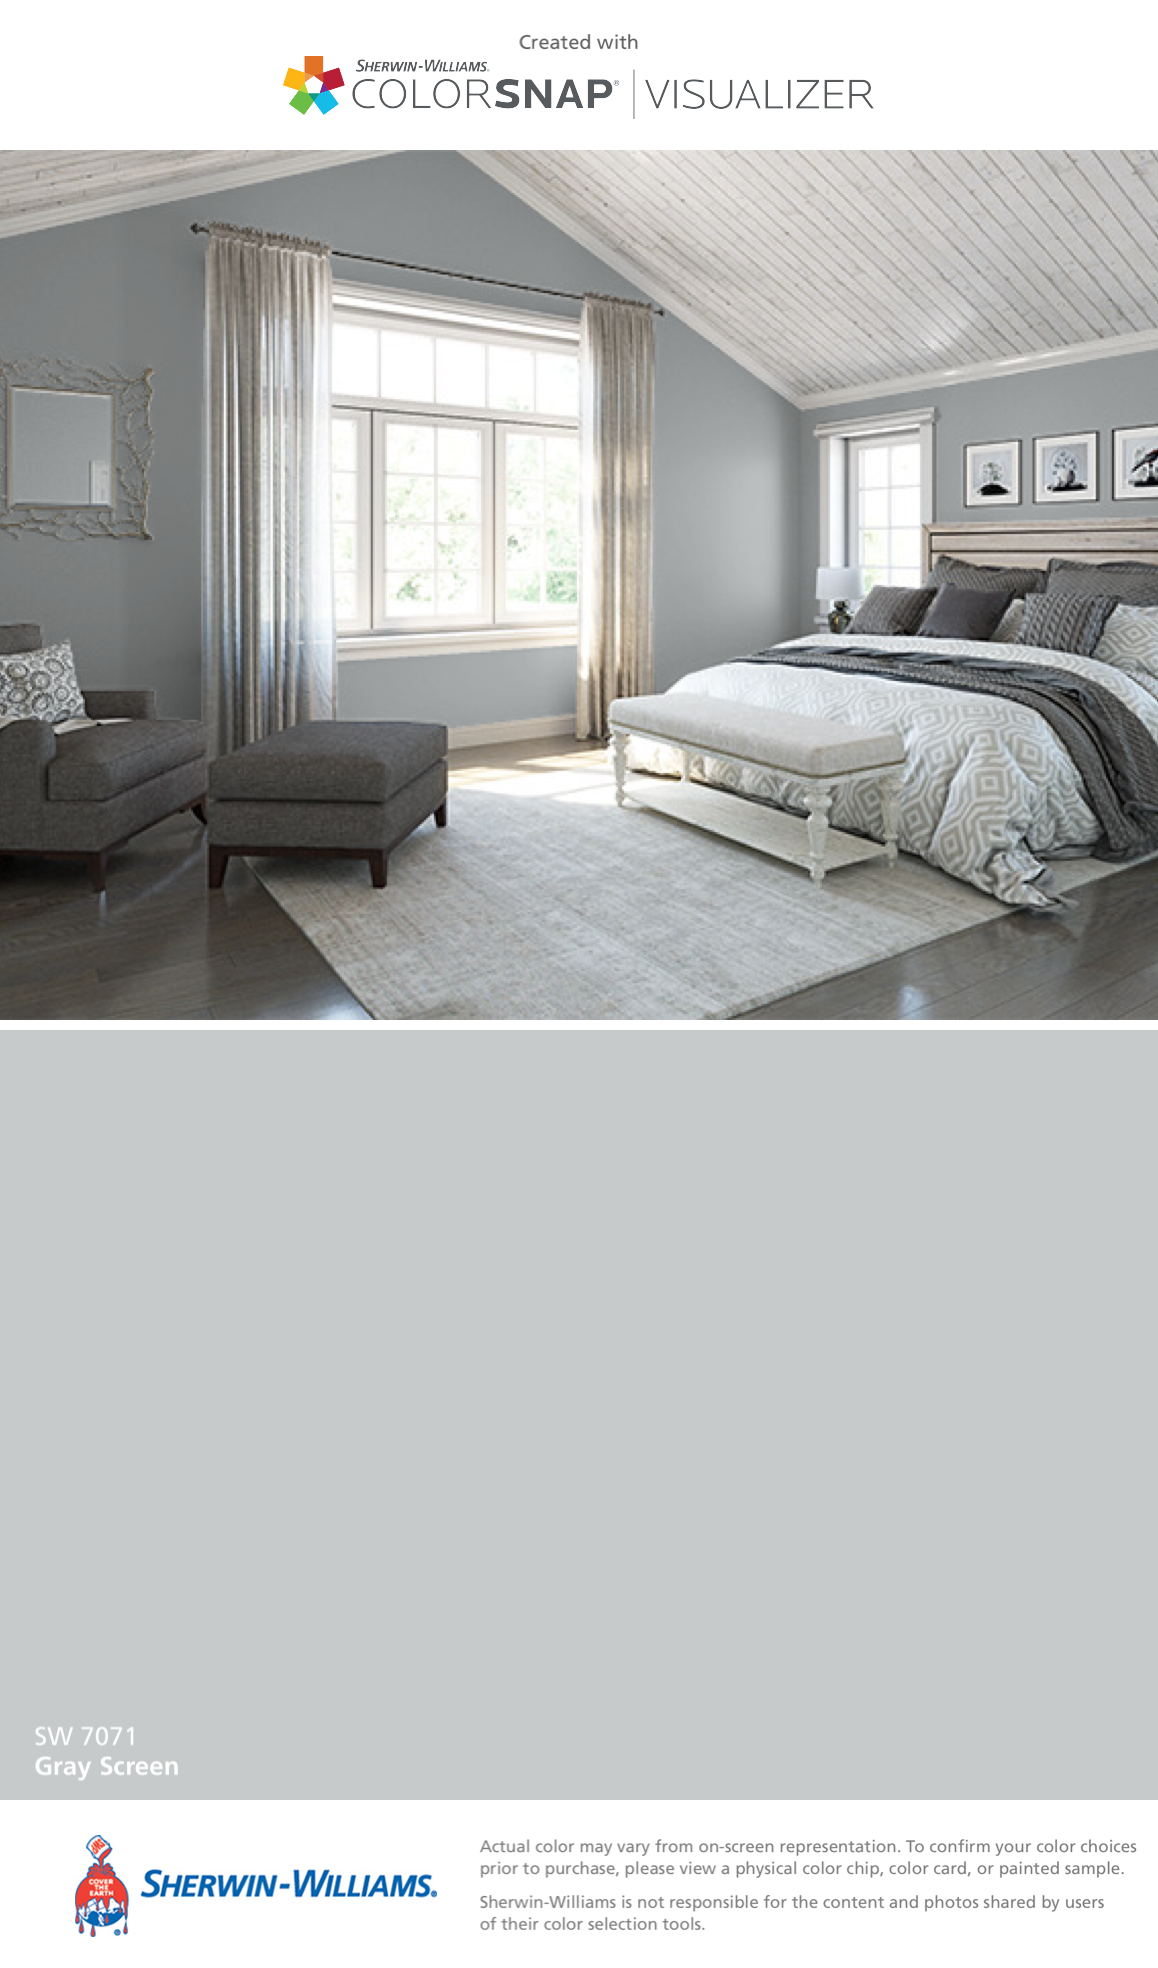 I Found This Color With Colorsnap Visualizer For Iphone By Sherwin Williams Gray Screen Sw